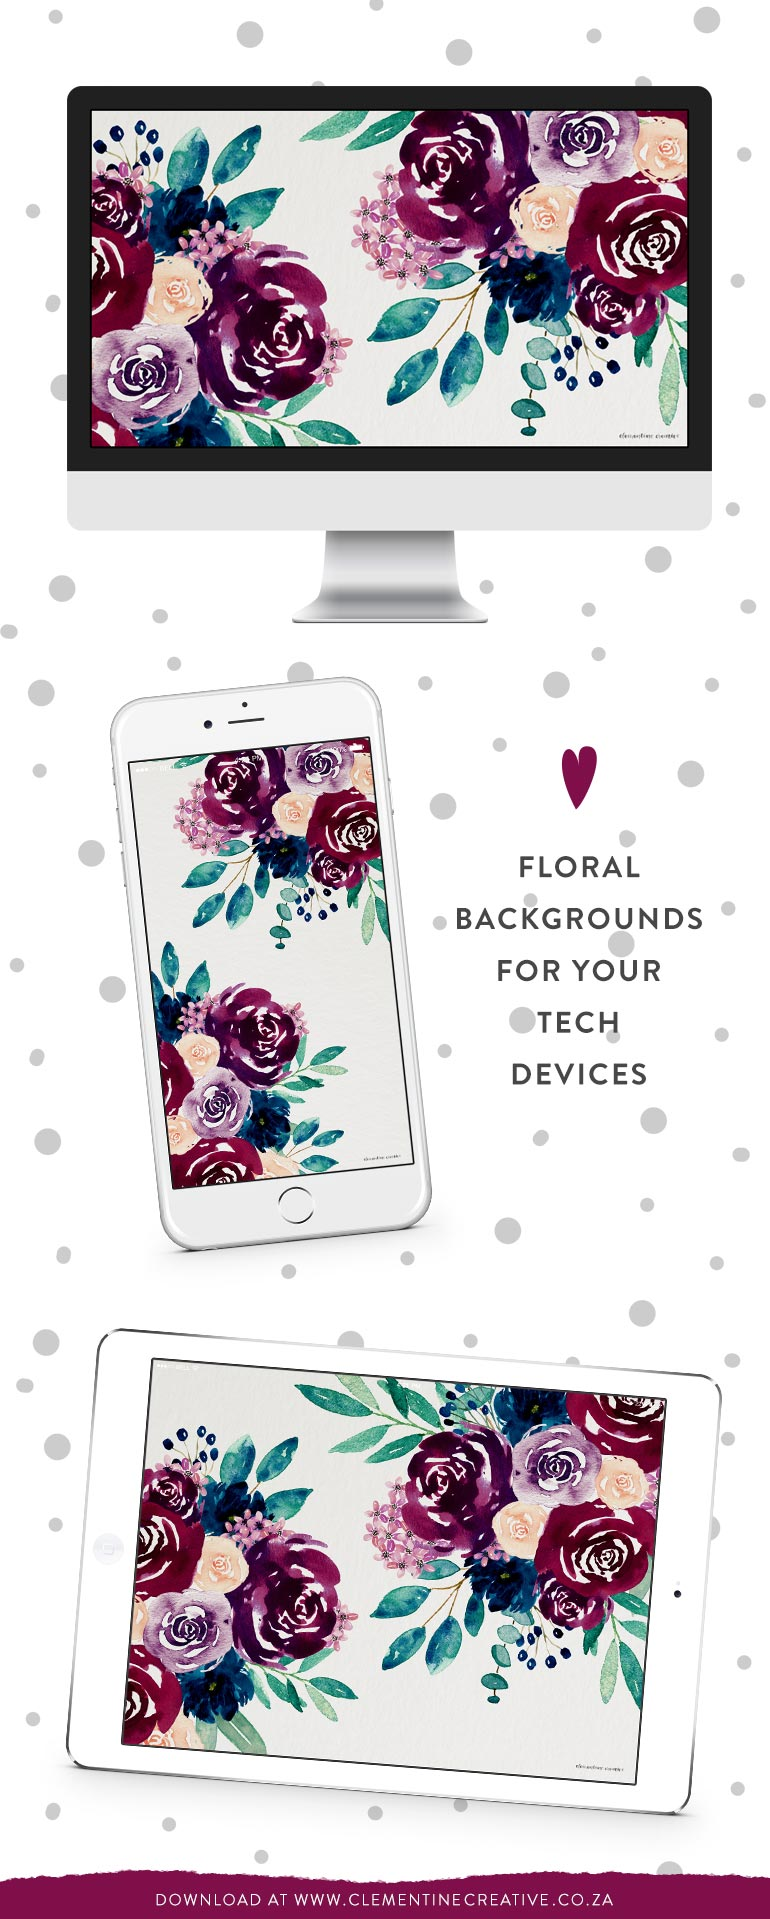 watercolor flowers wallpaper for desktop, tablet and phone